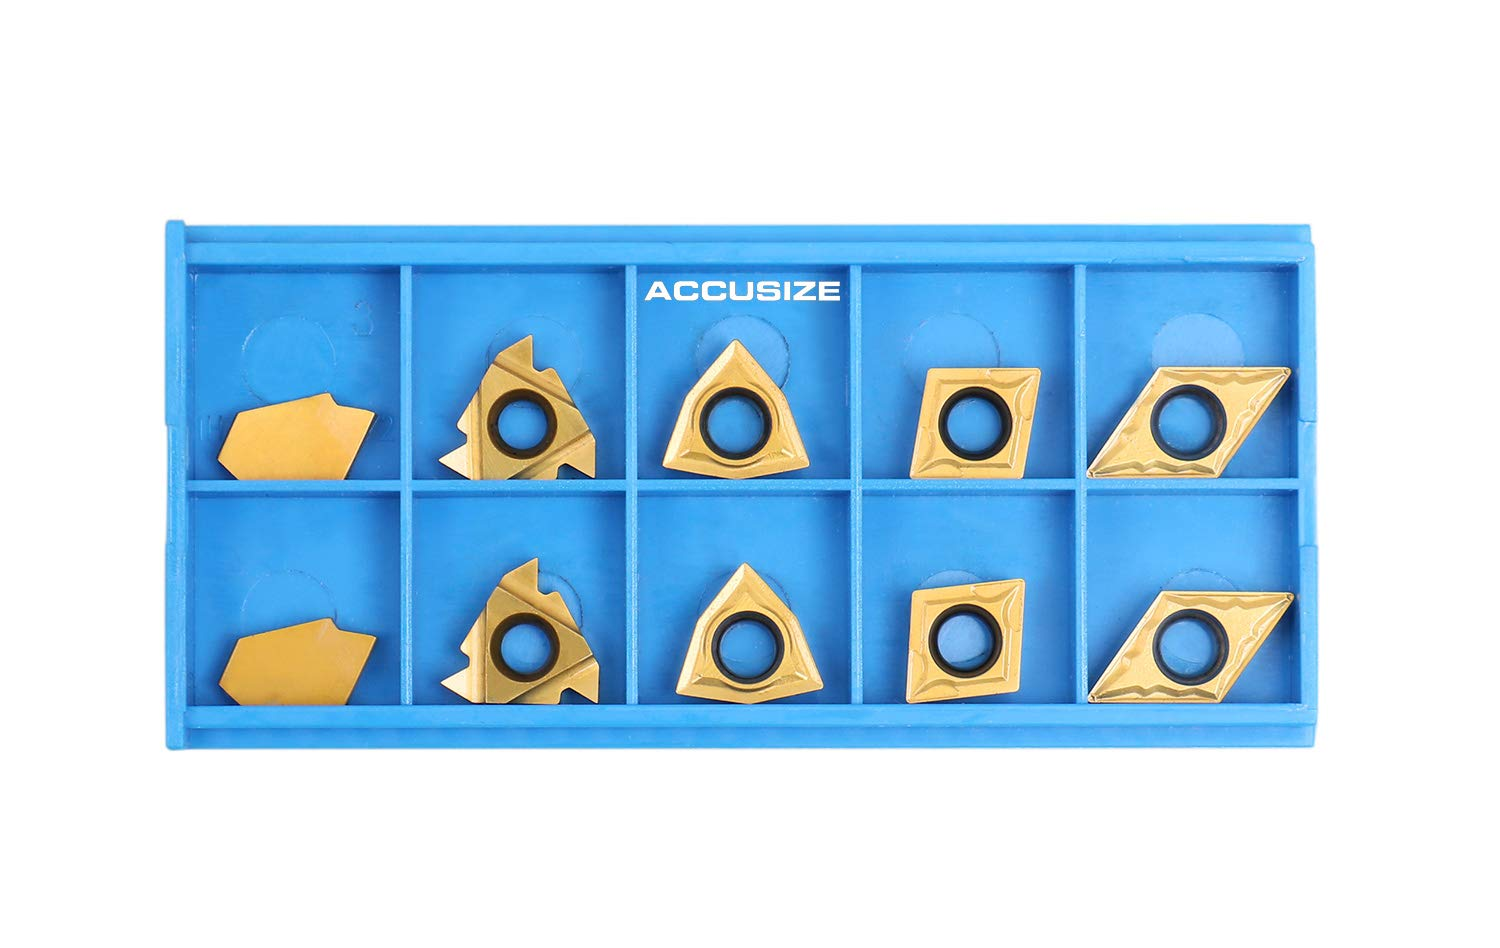 Accusize Industrial Tools 2 Pc of Each Kind of Carbide Inserts for 2988-0034 Total 10 Pieces CVD Coated and Tin Coated 2988-0034Inserts